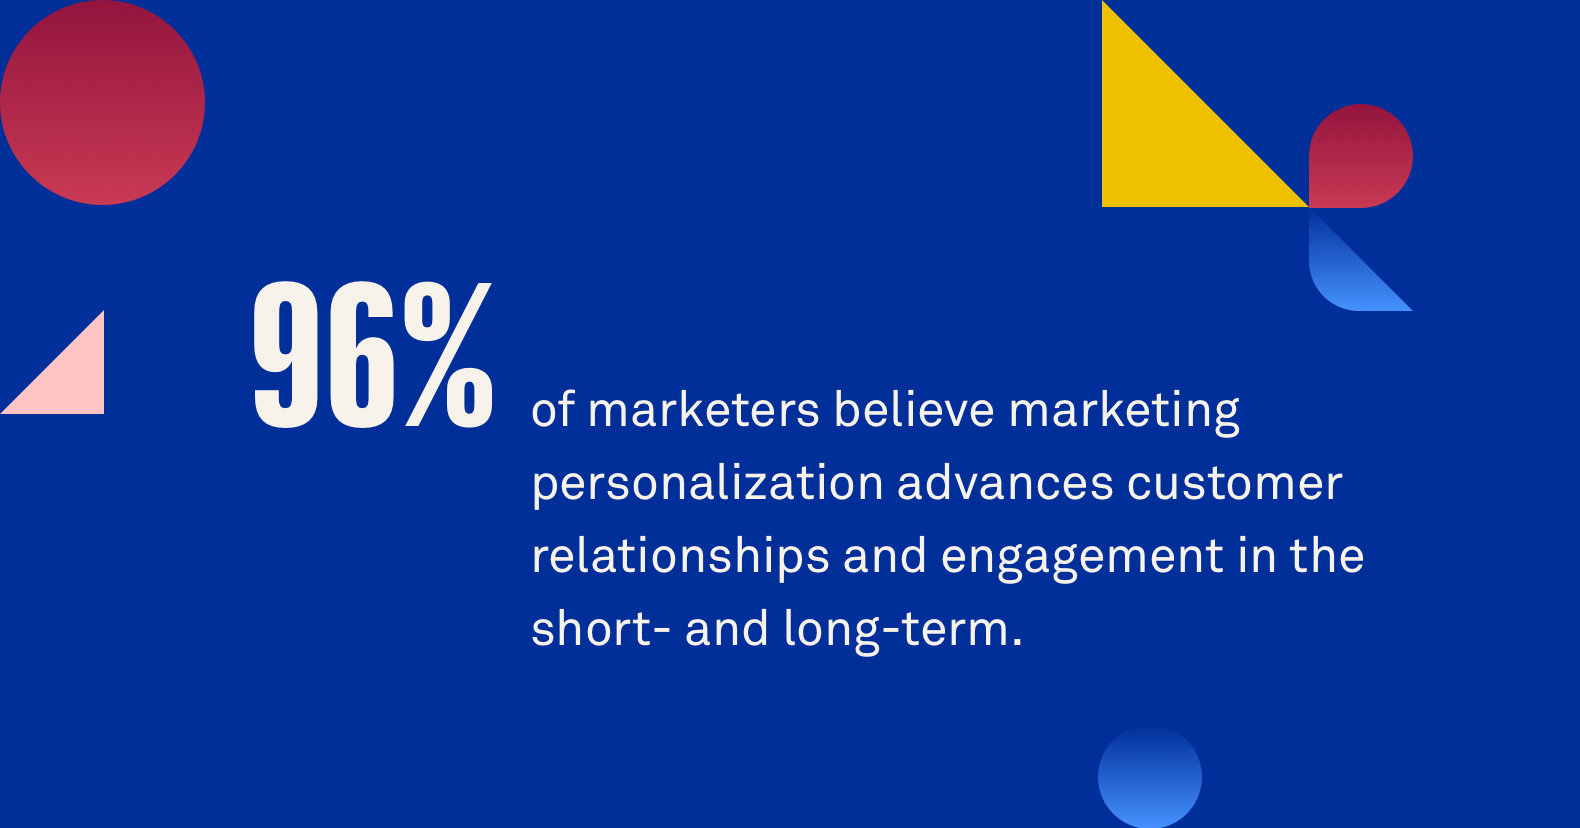 2019 digital marketing updates marketing personalization: 96 percent of marketers believe marketing personalization advances customer relationships and engagement in the short- and long-term